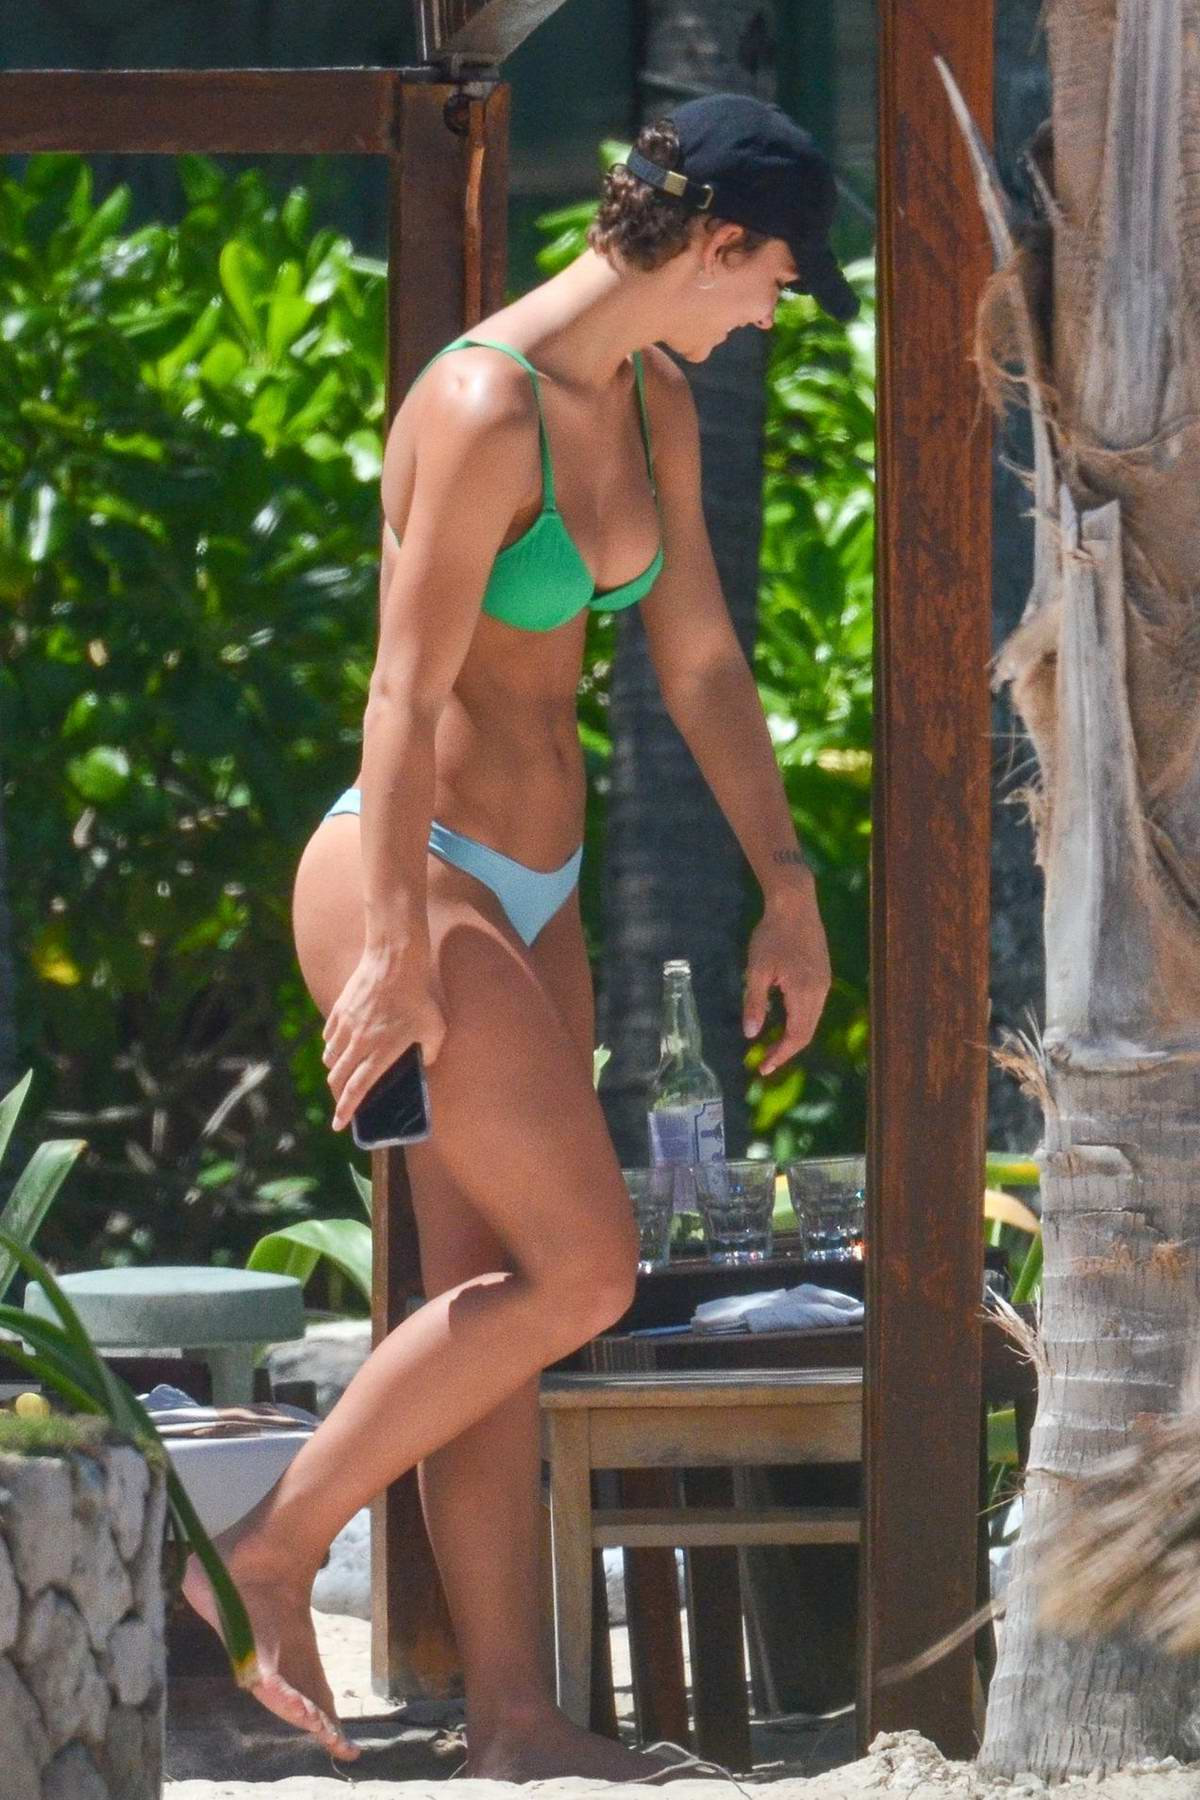 Rachel Cook spotted in a green and blue bikini as she relaxes while on vacation in Tulum, Mexico